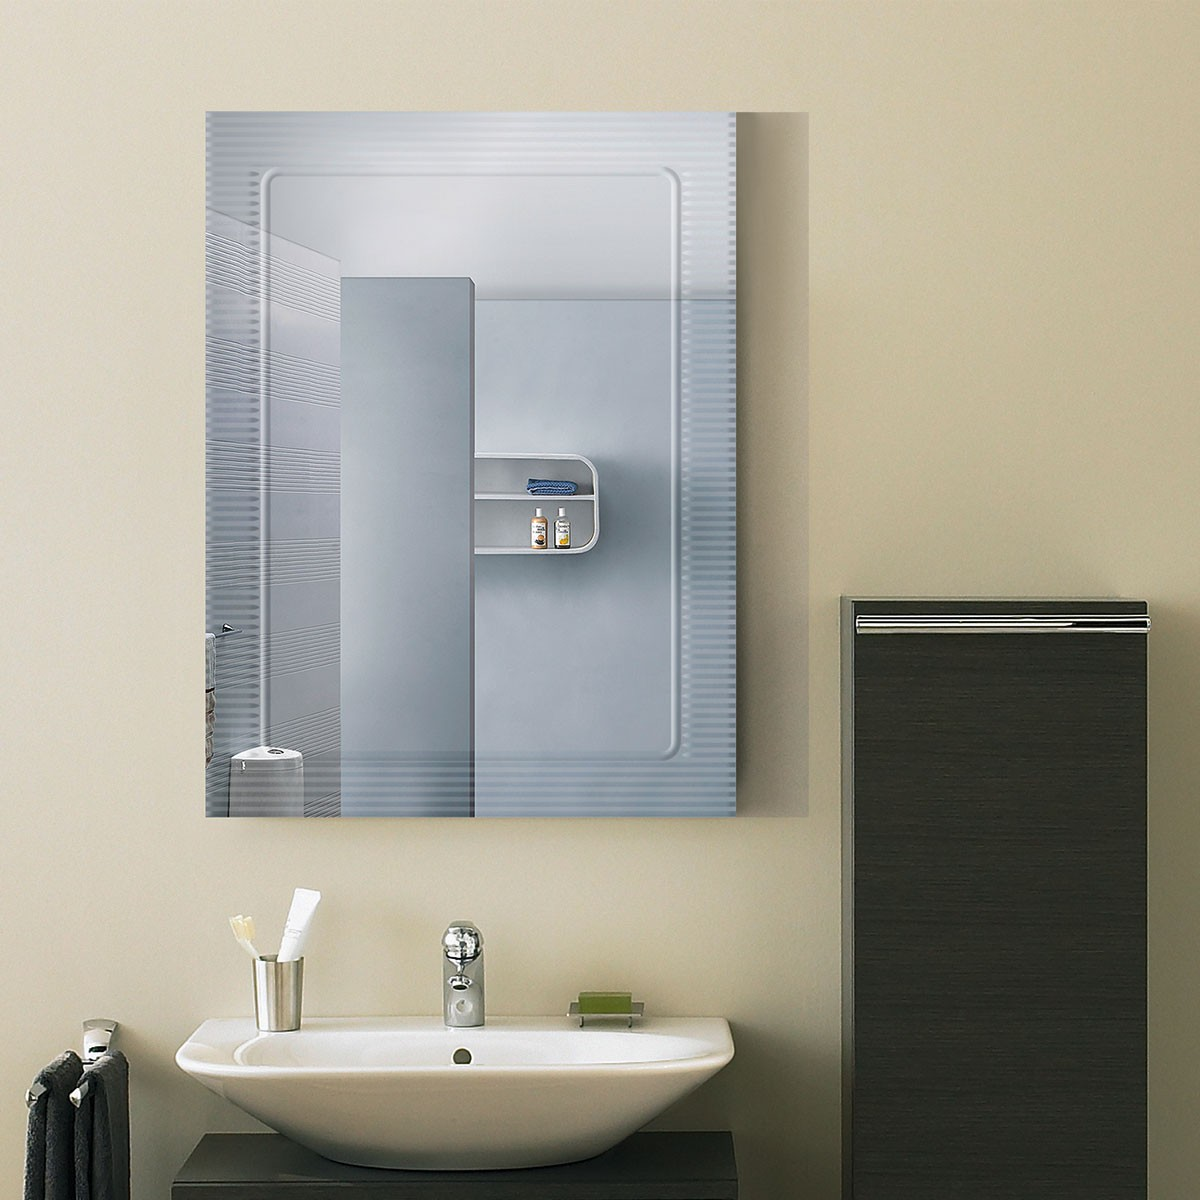 18 x 24 In. Wall-mounted Rectangle Bathroom Mirror (DK-OD-B067C)